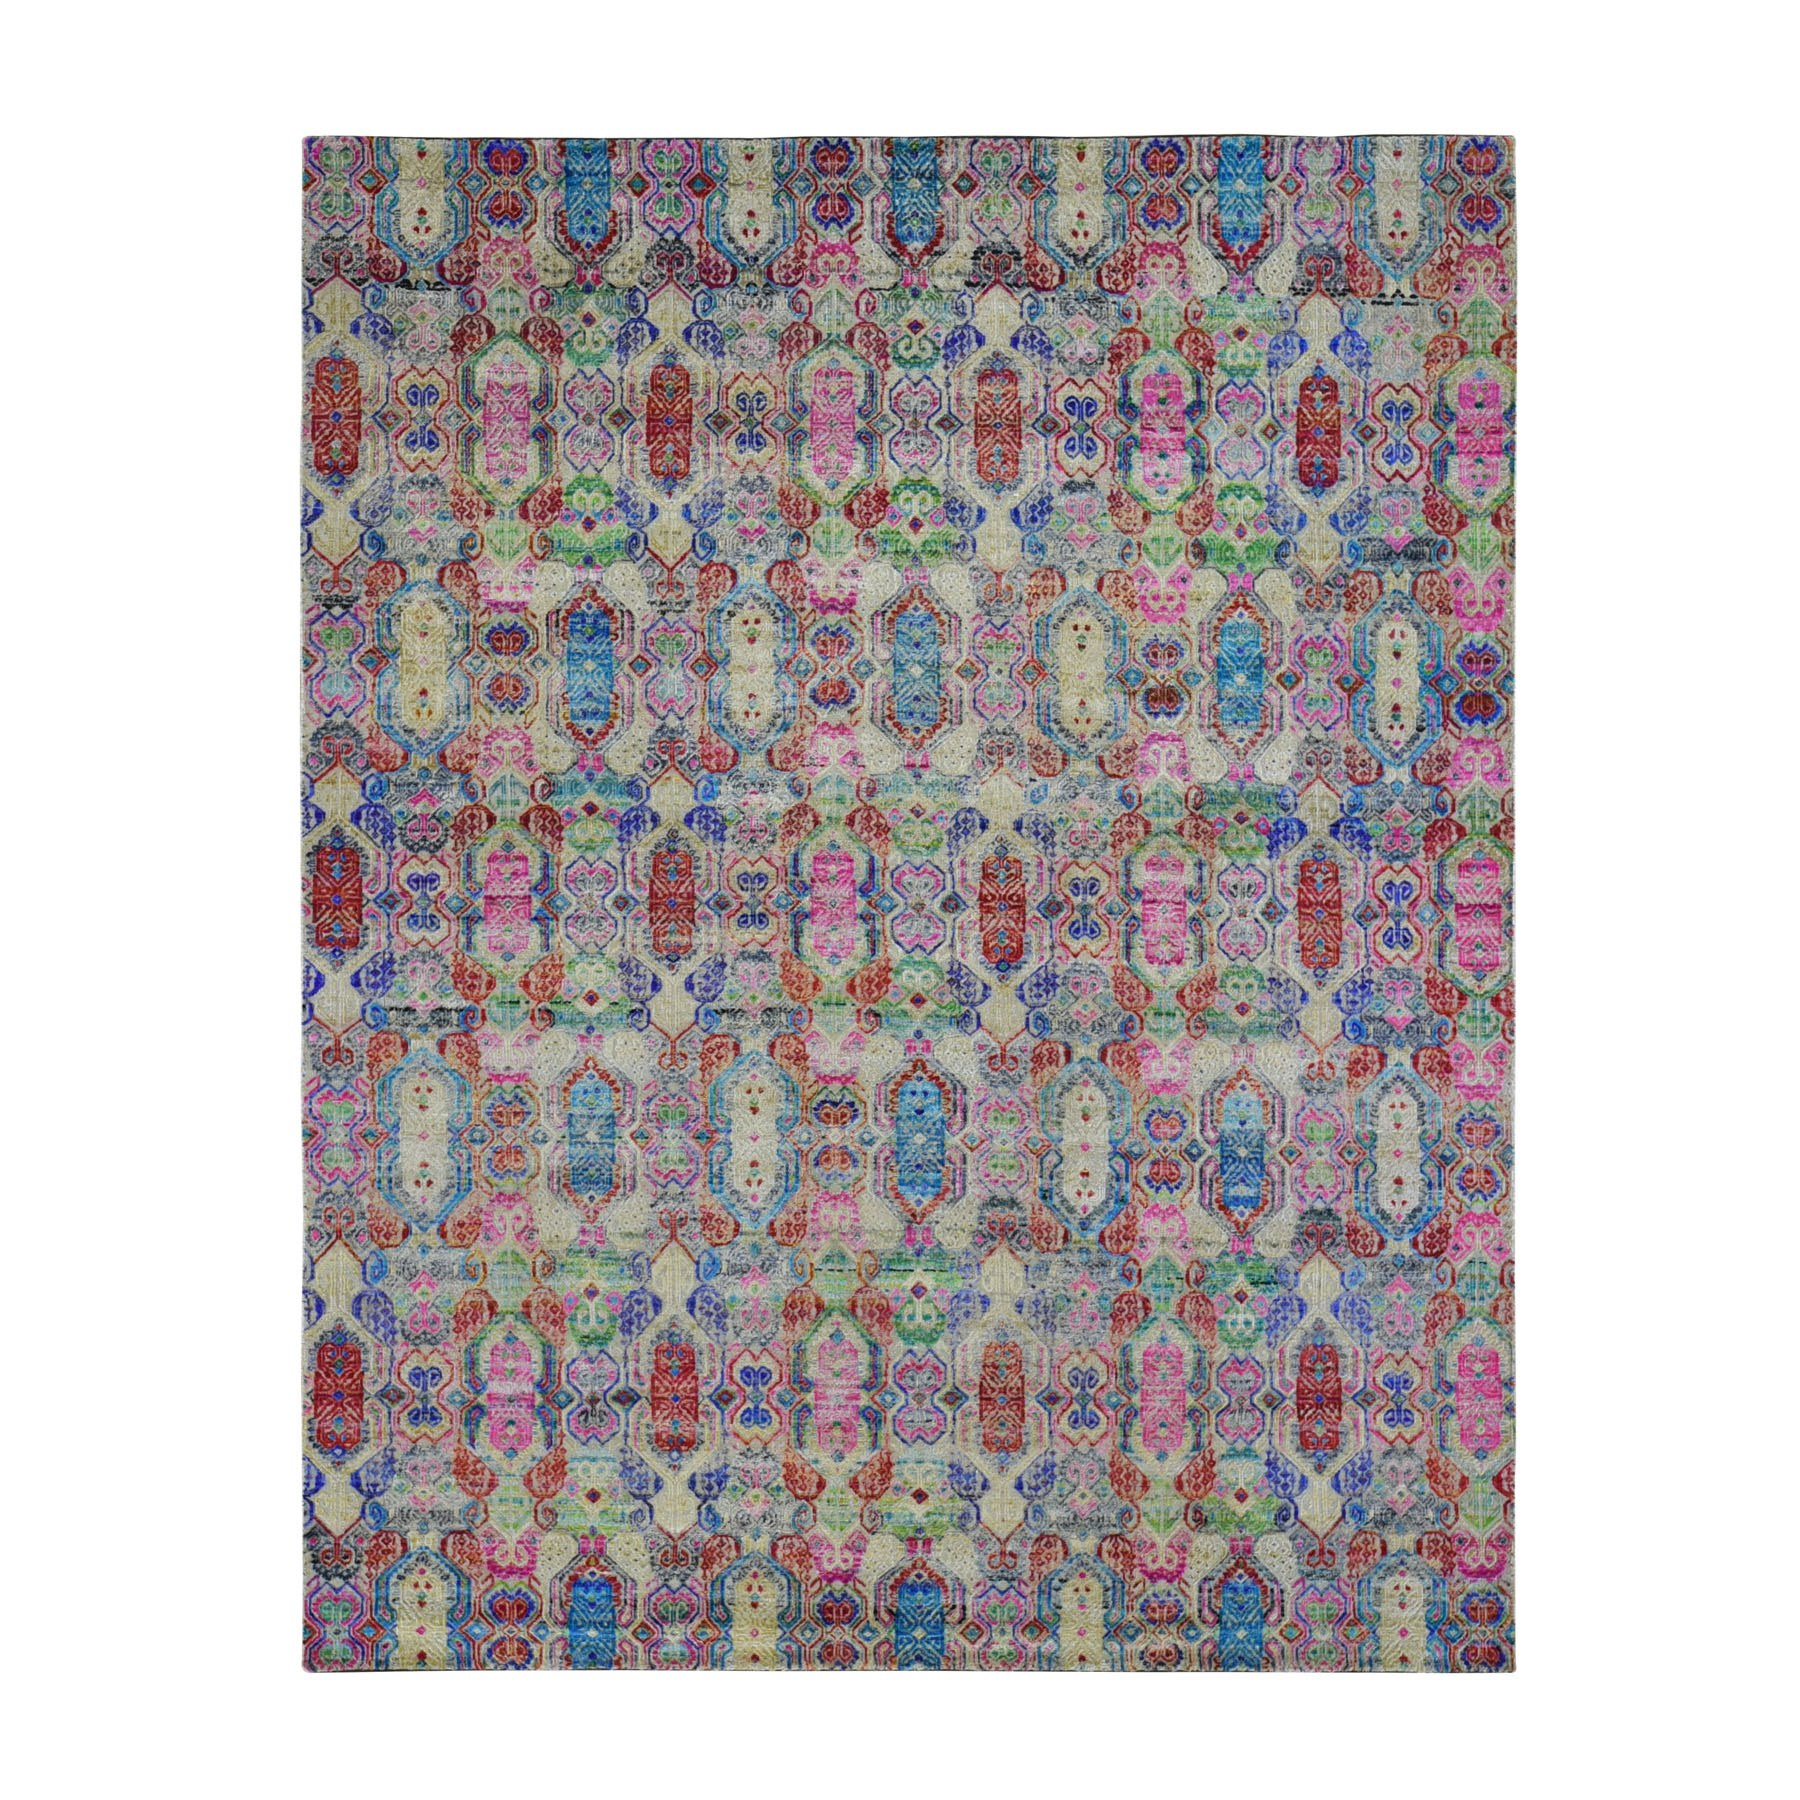 Modern & Contemporary Rugs LUV532314